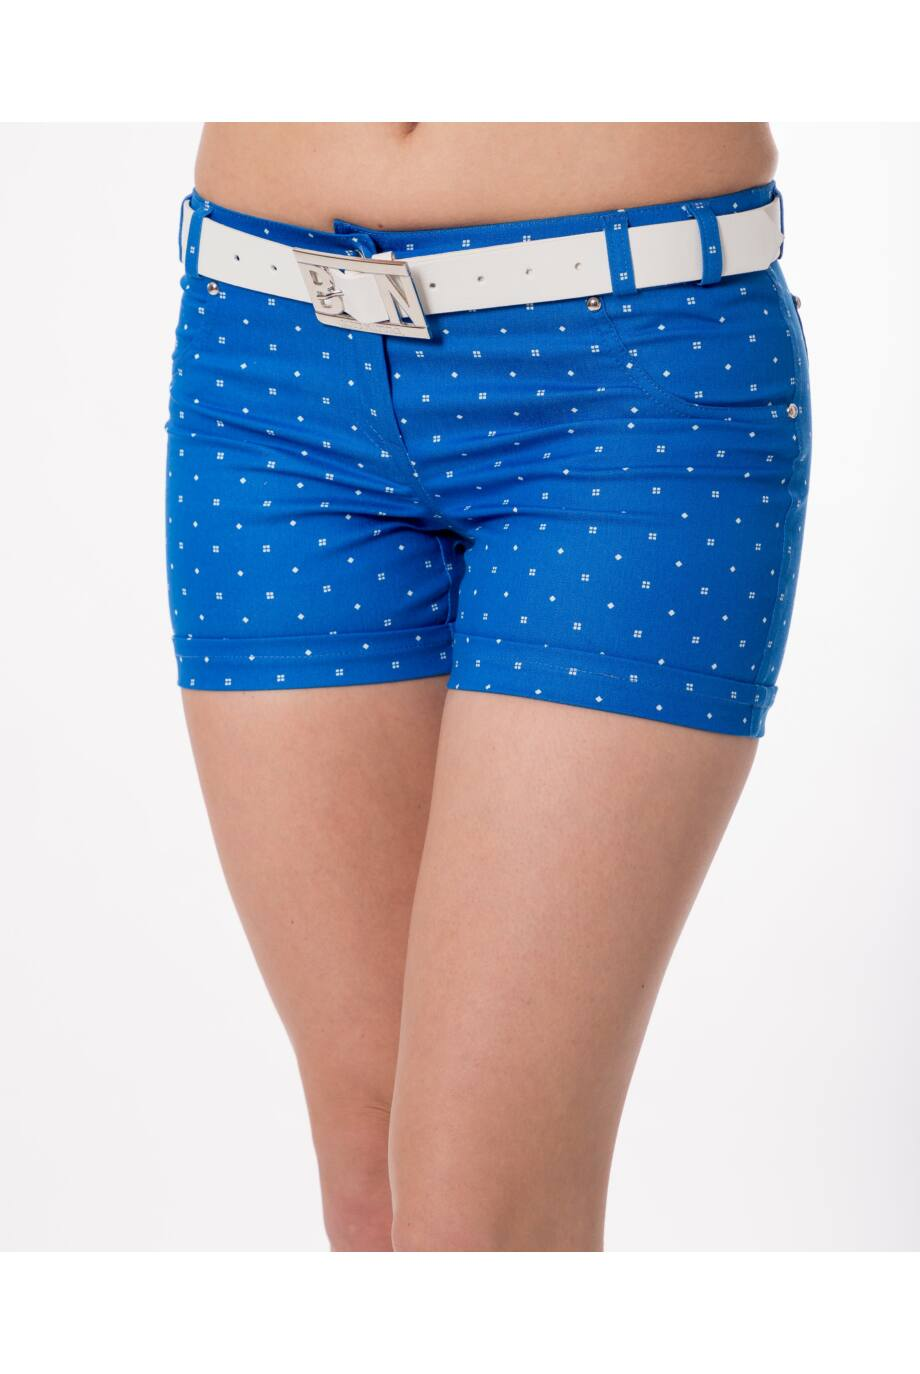 mintás_short_kék_s_blue_nature